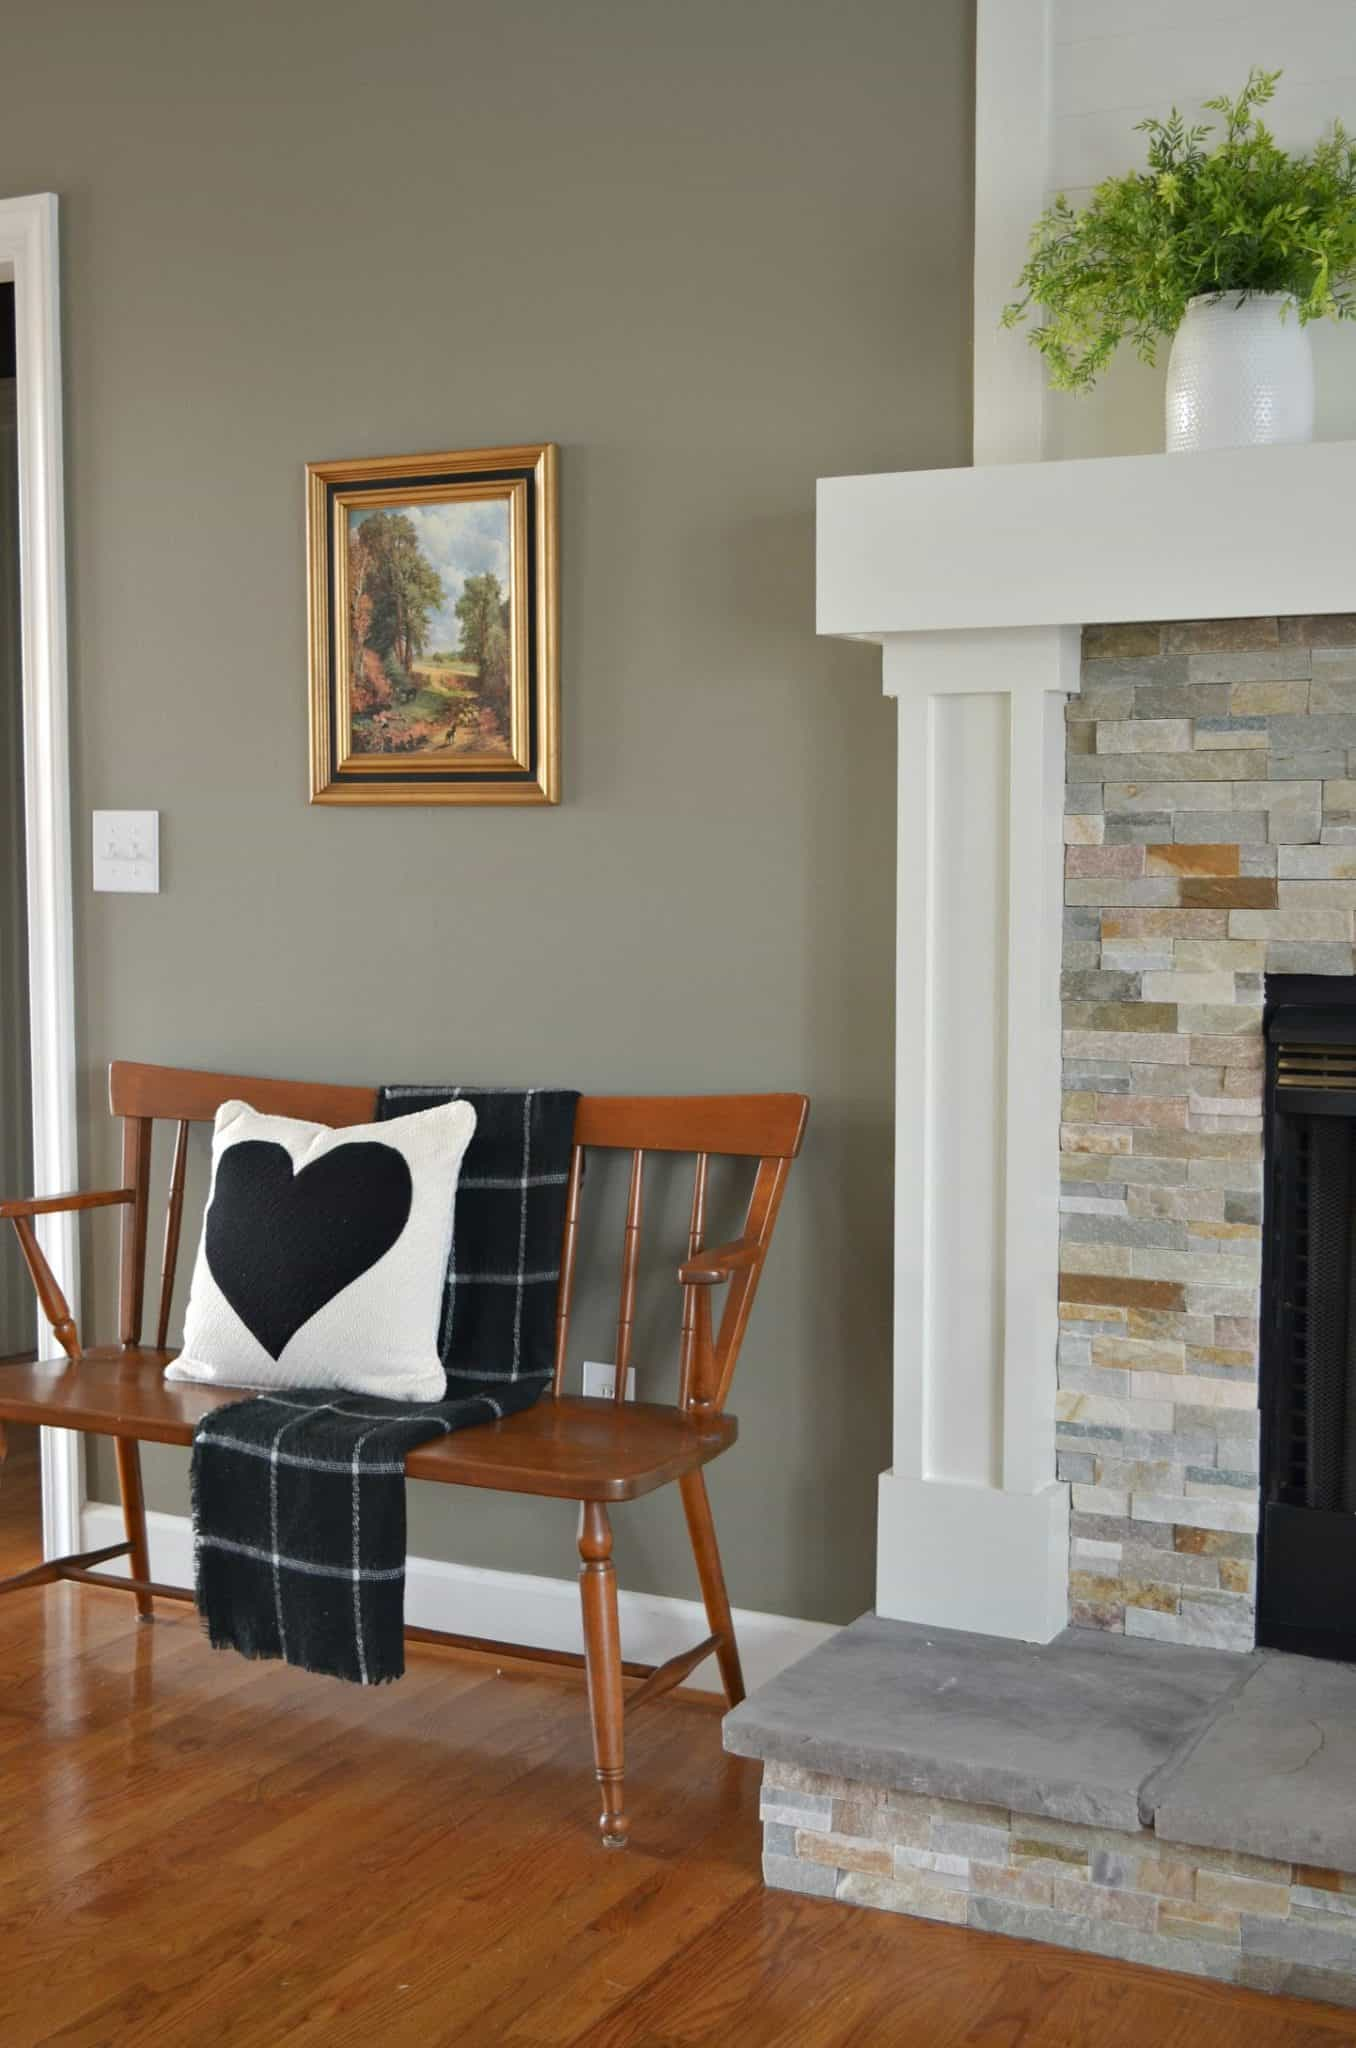 7 Ways to Make Home the Best place to be